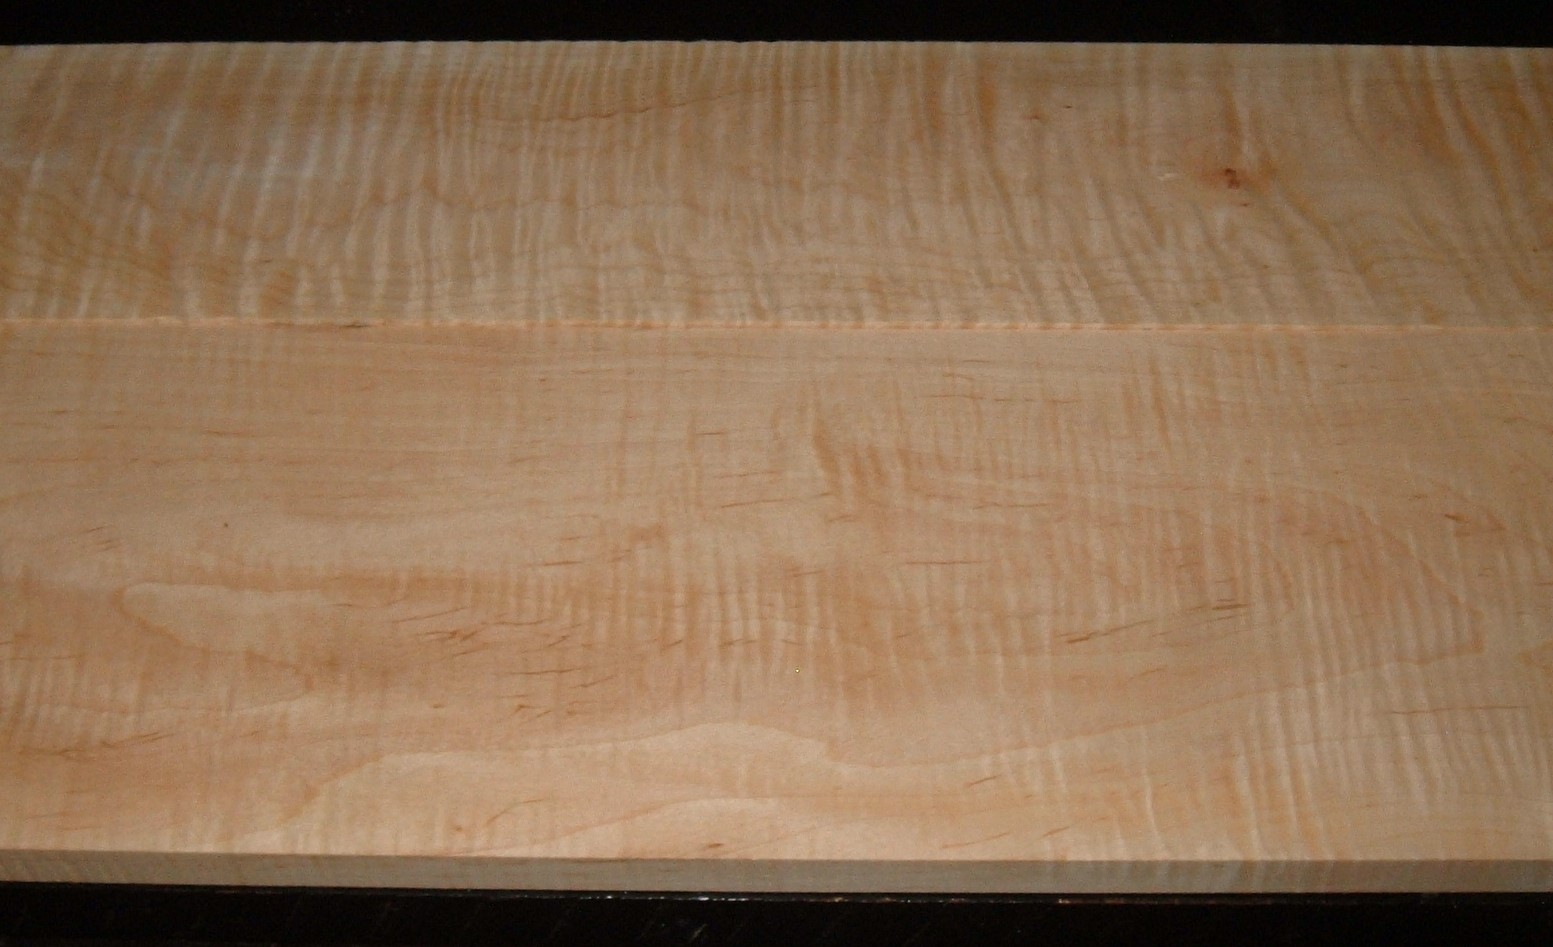 M2006-514JJ, 2bd, 3/4x5-5/8x42, 3/4x7-7/8x42, 4/4 Curly Tiger Maple